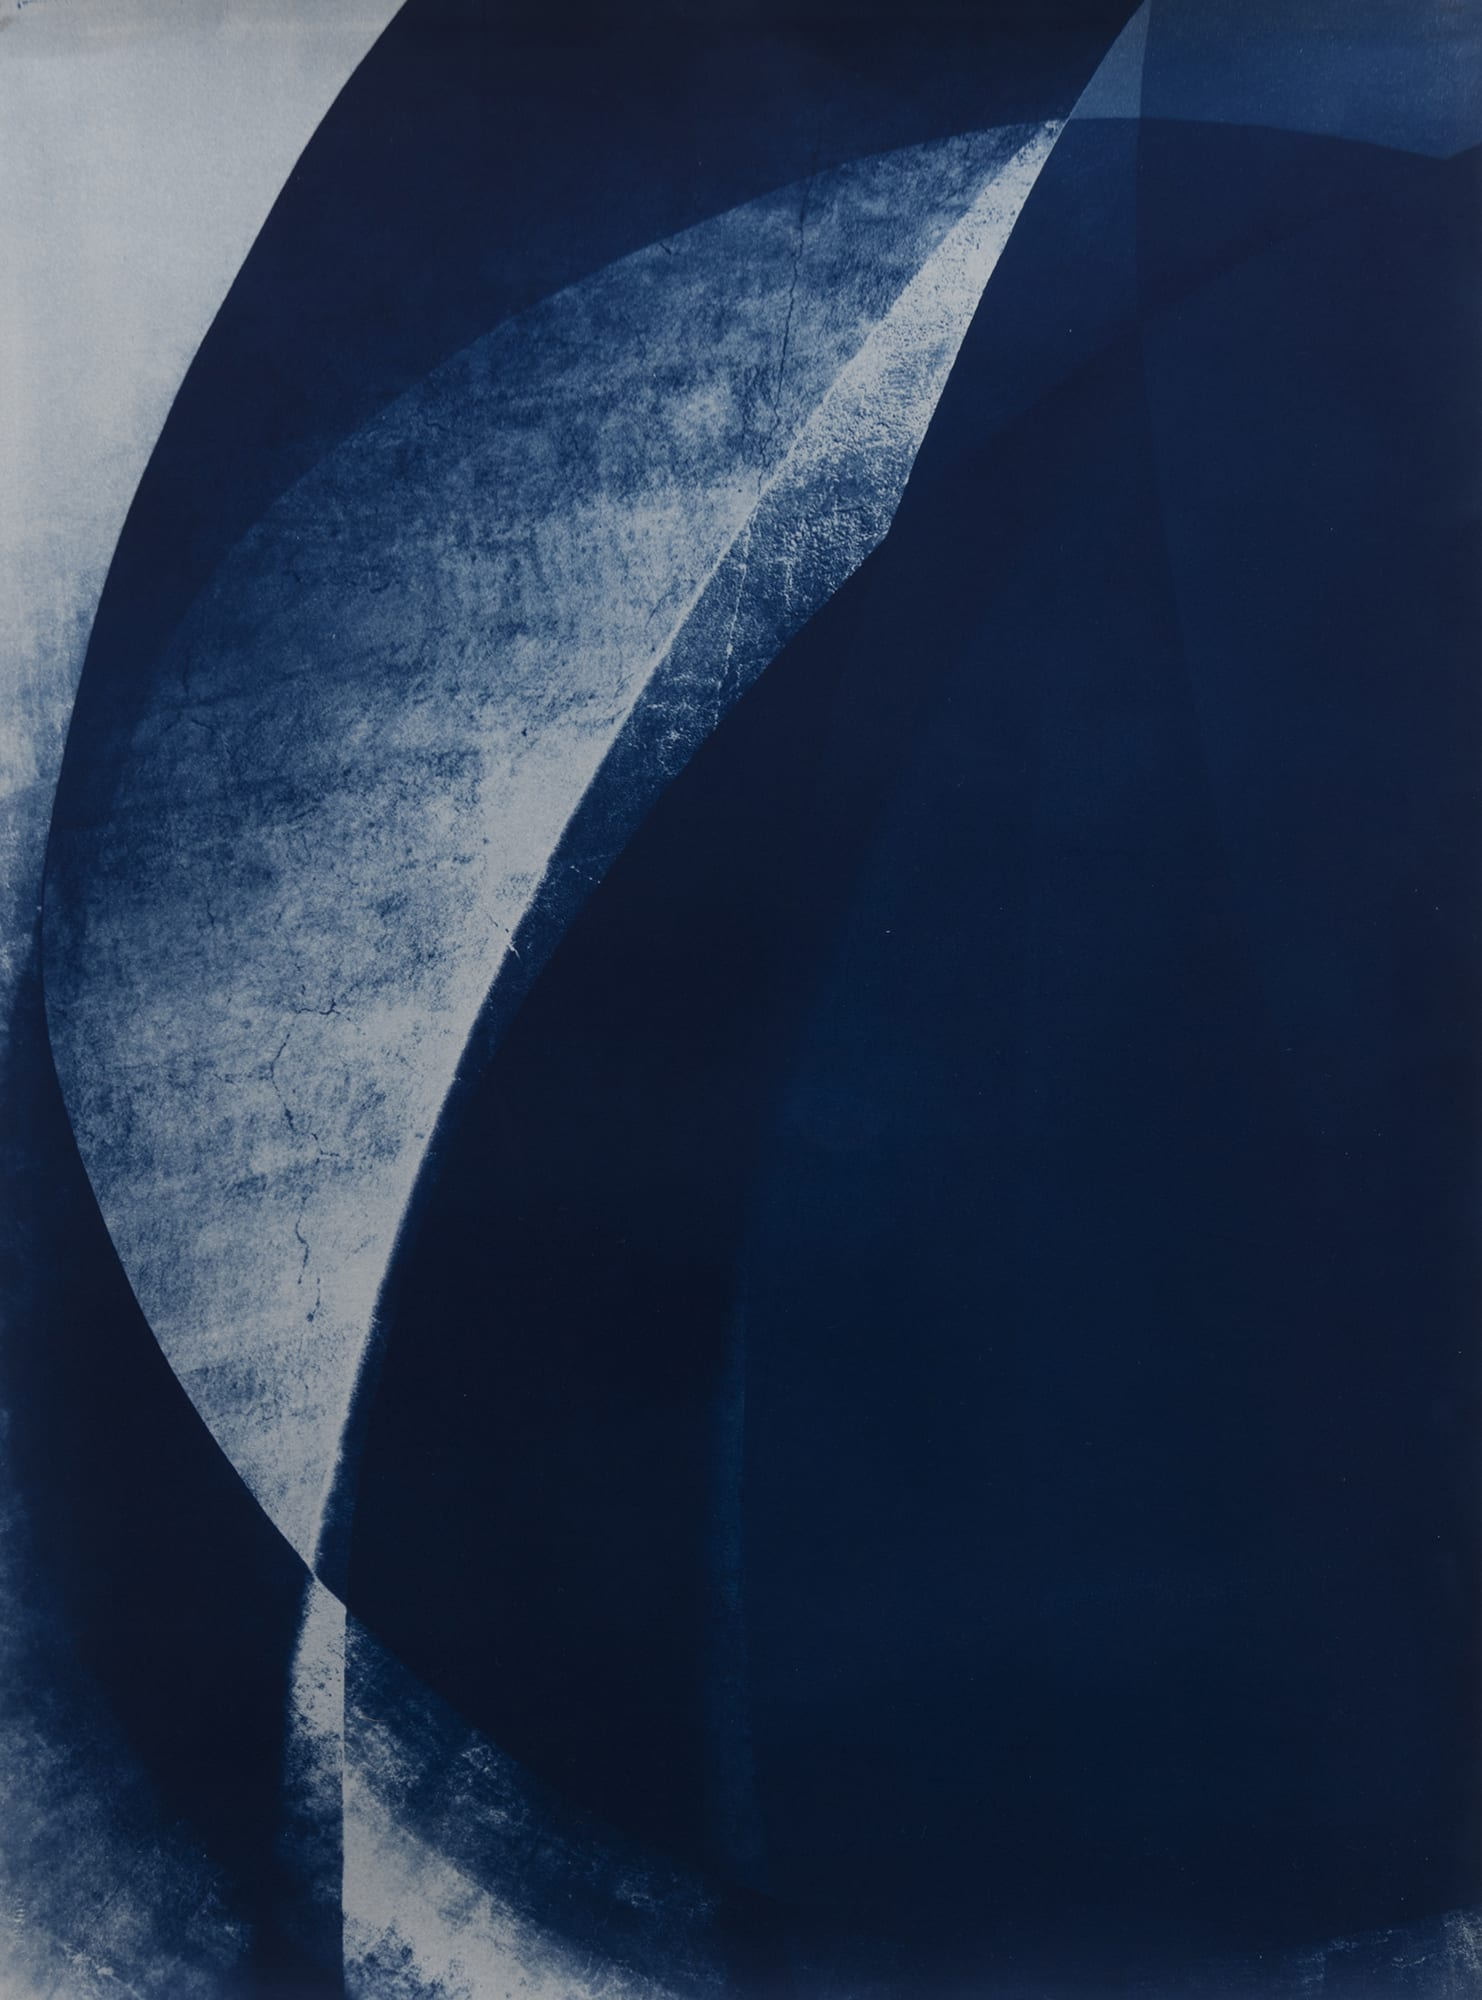 "<span class=""link fancybox-details-link""><a href=""/content/feature/145/artworks687/"">View Detail Page</a></span><div class=""medium"">Cyanotype on cotton rag paper<br /> Framed</div> <div class=""dimensions"">76.2 x 61 cm<br /> 30 x 24 1/8 in</div> <div class=""edition_details"">Edition of 3 + 2 Artist Proofs</div>"